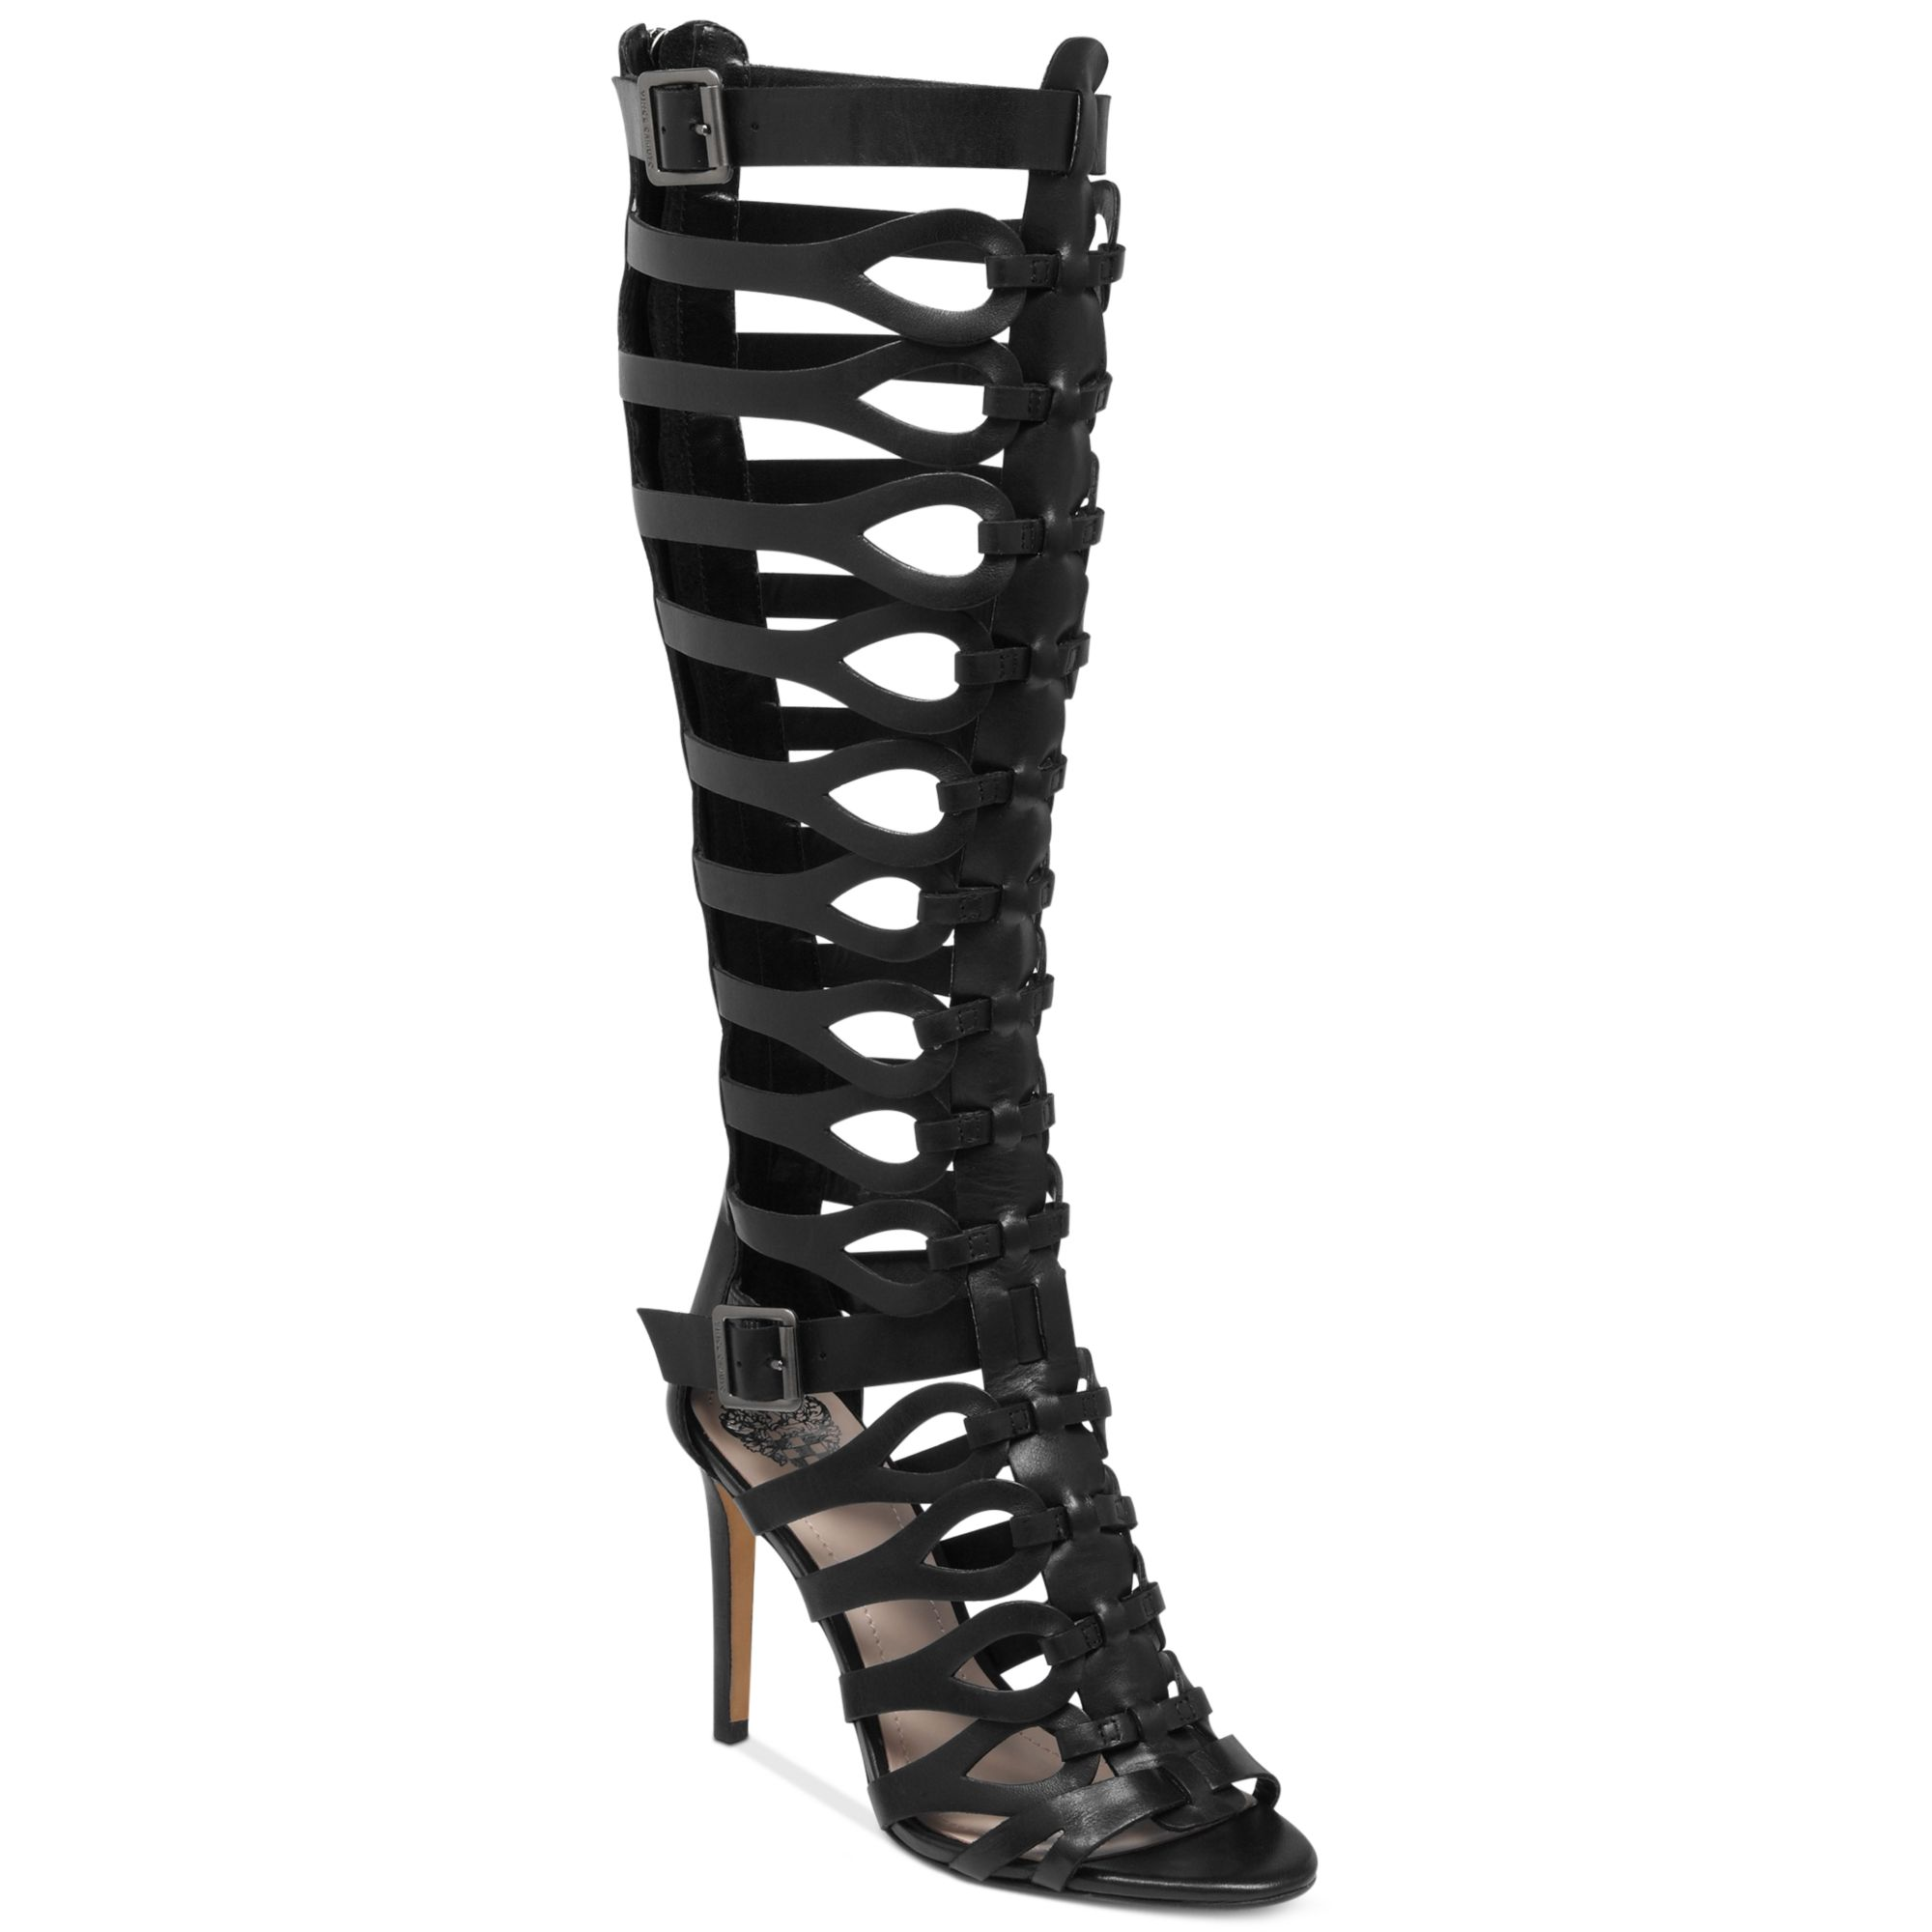 Vince camuto Omera Tall Gladiator Heel Sandals in Black | Lyst